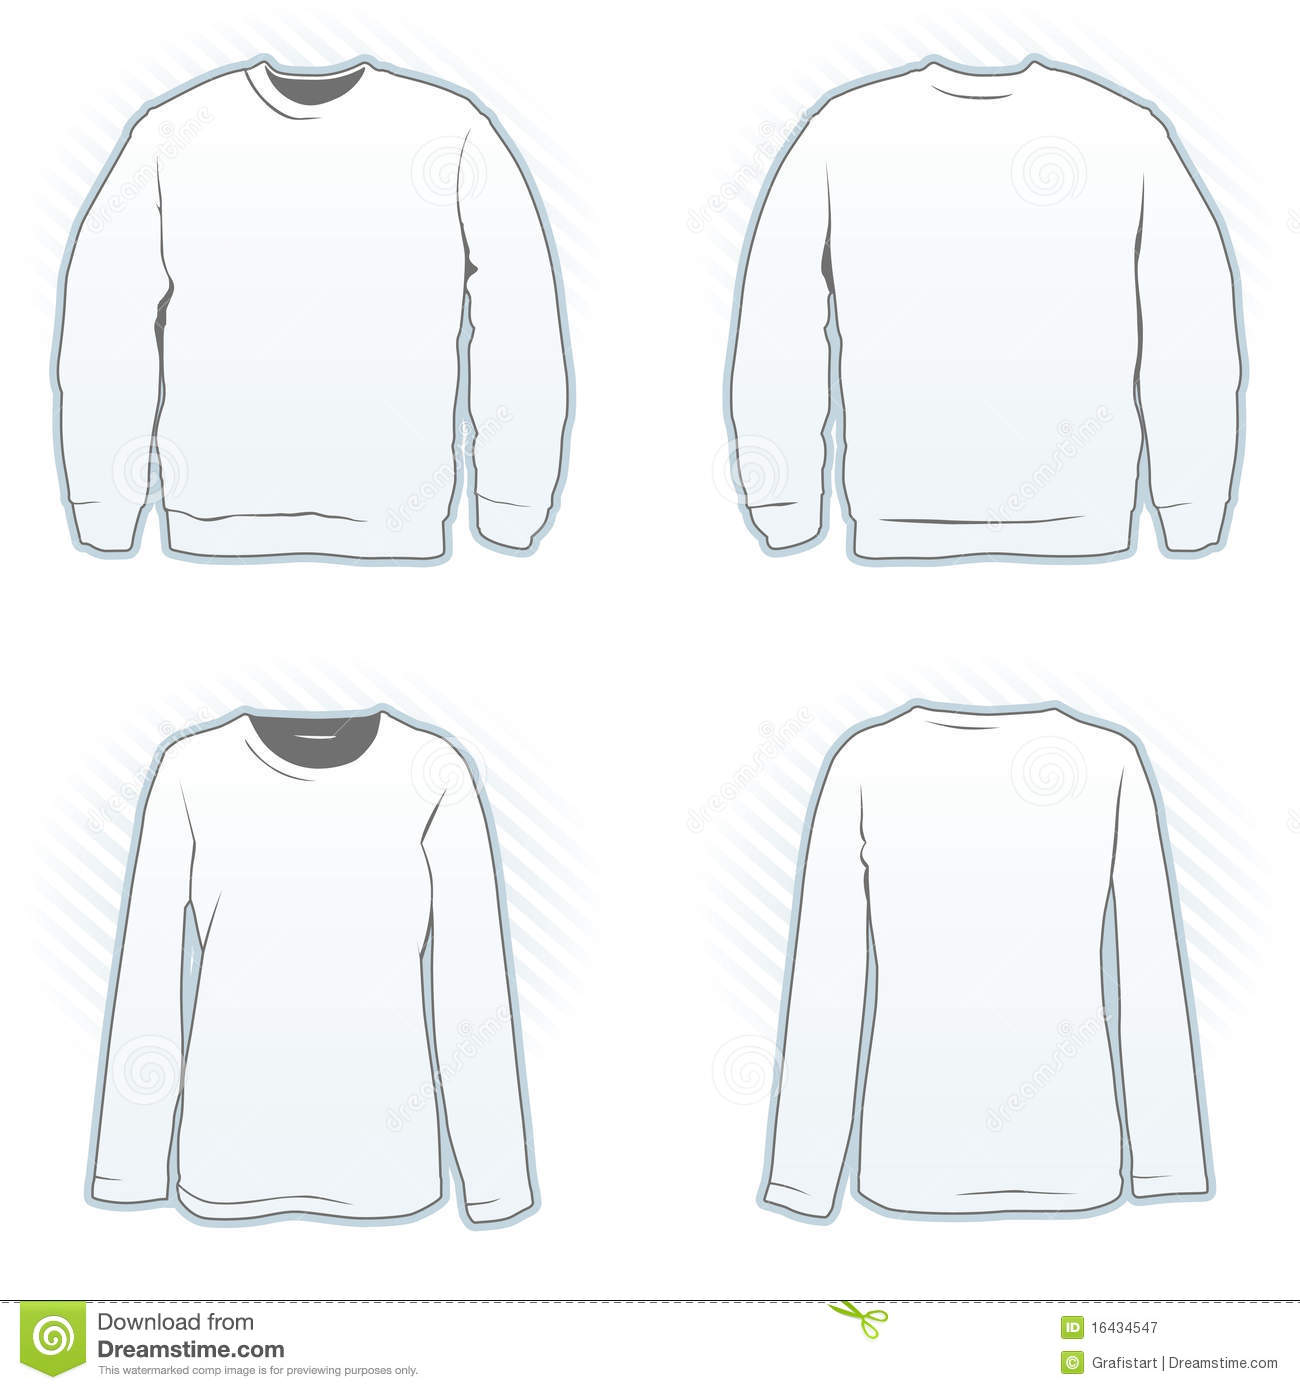 Crew Neck Sweatshirt Template Vector - Cardigan With Buttons